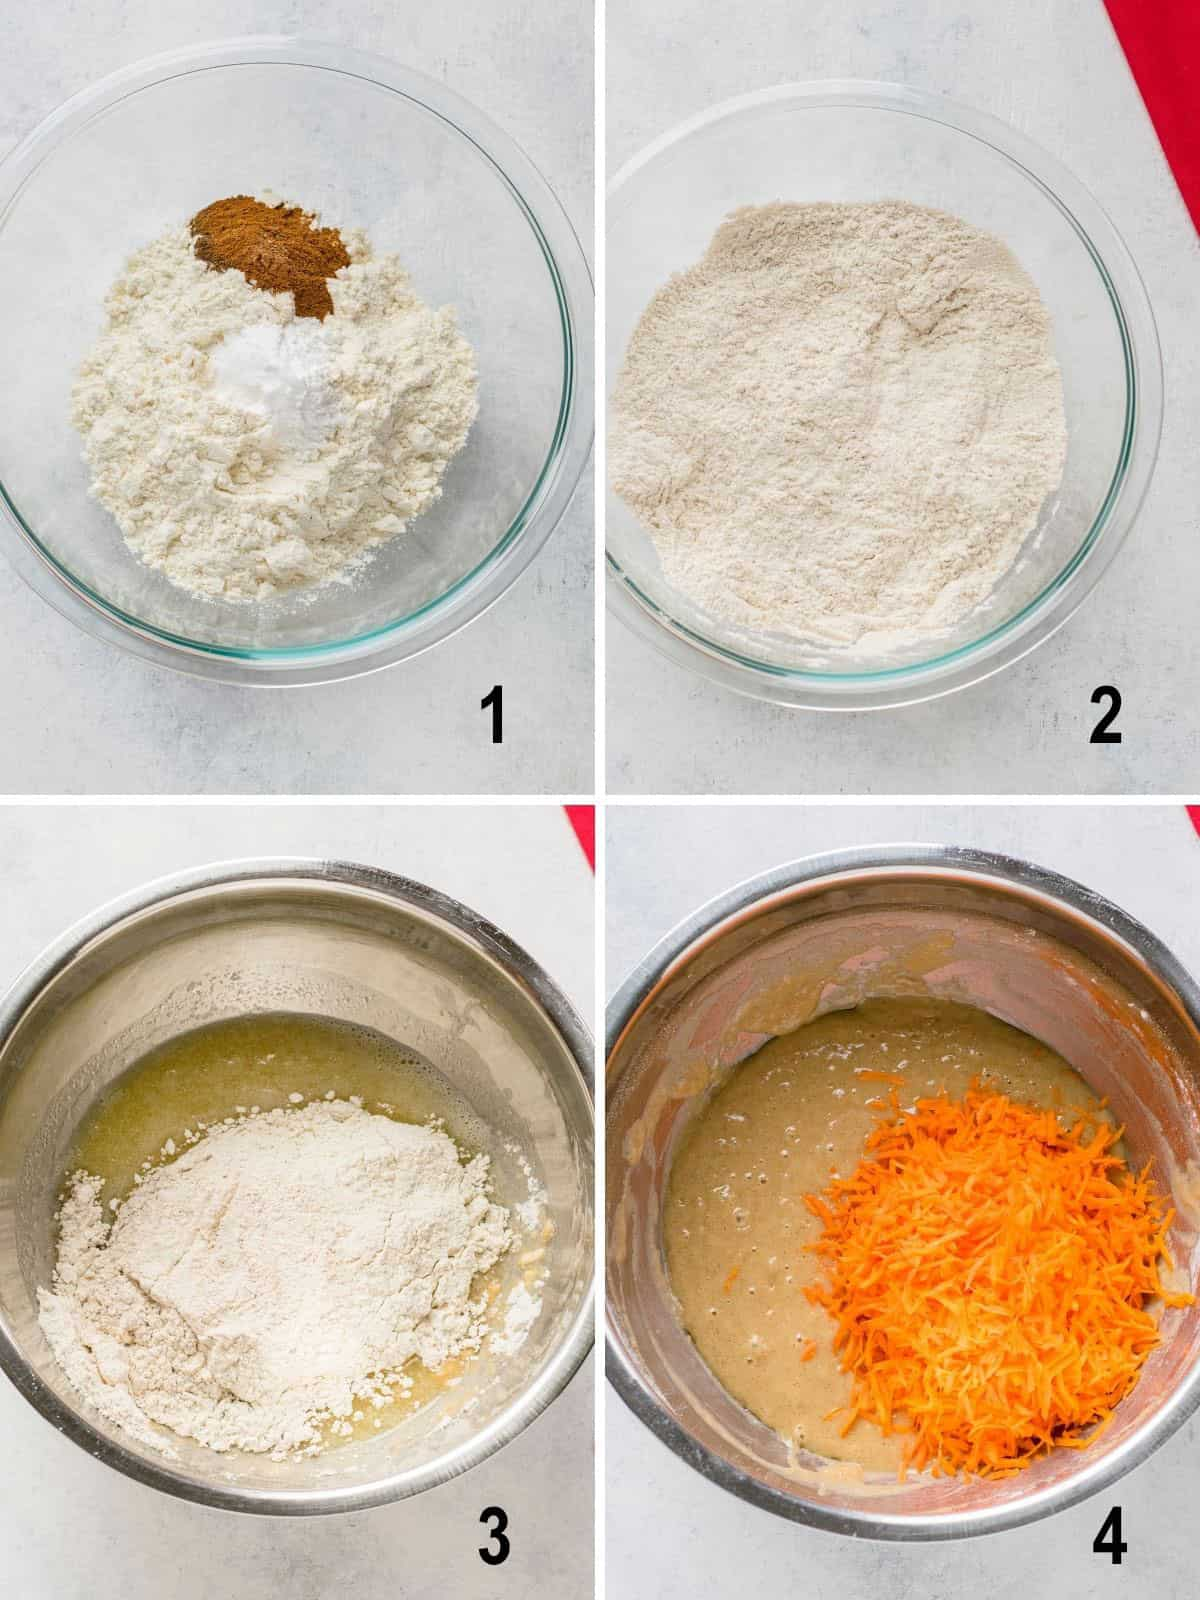 dry ingredients in bowl, mixed ingredients, added to batter, shredded carrots on batter